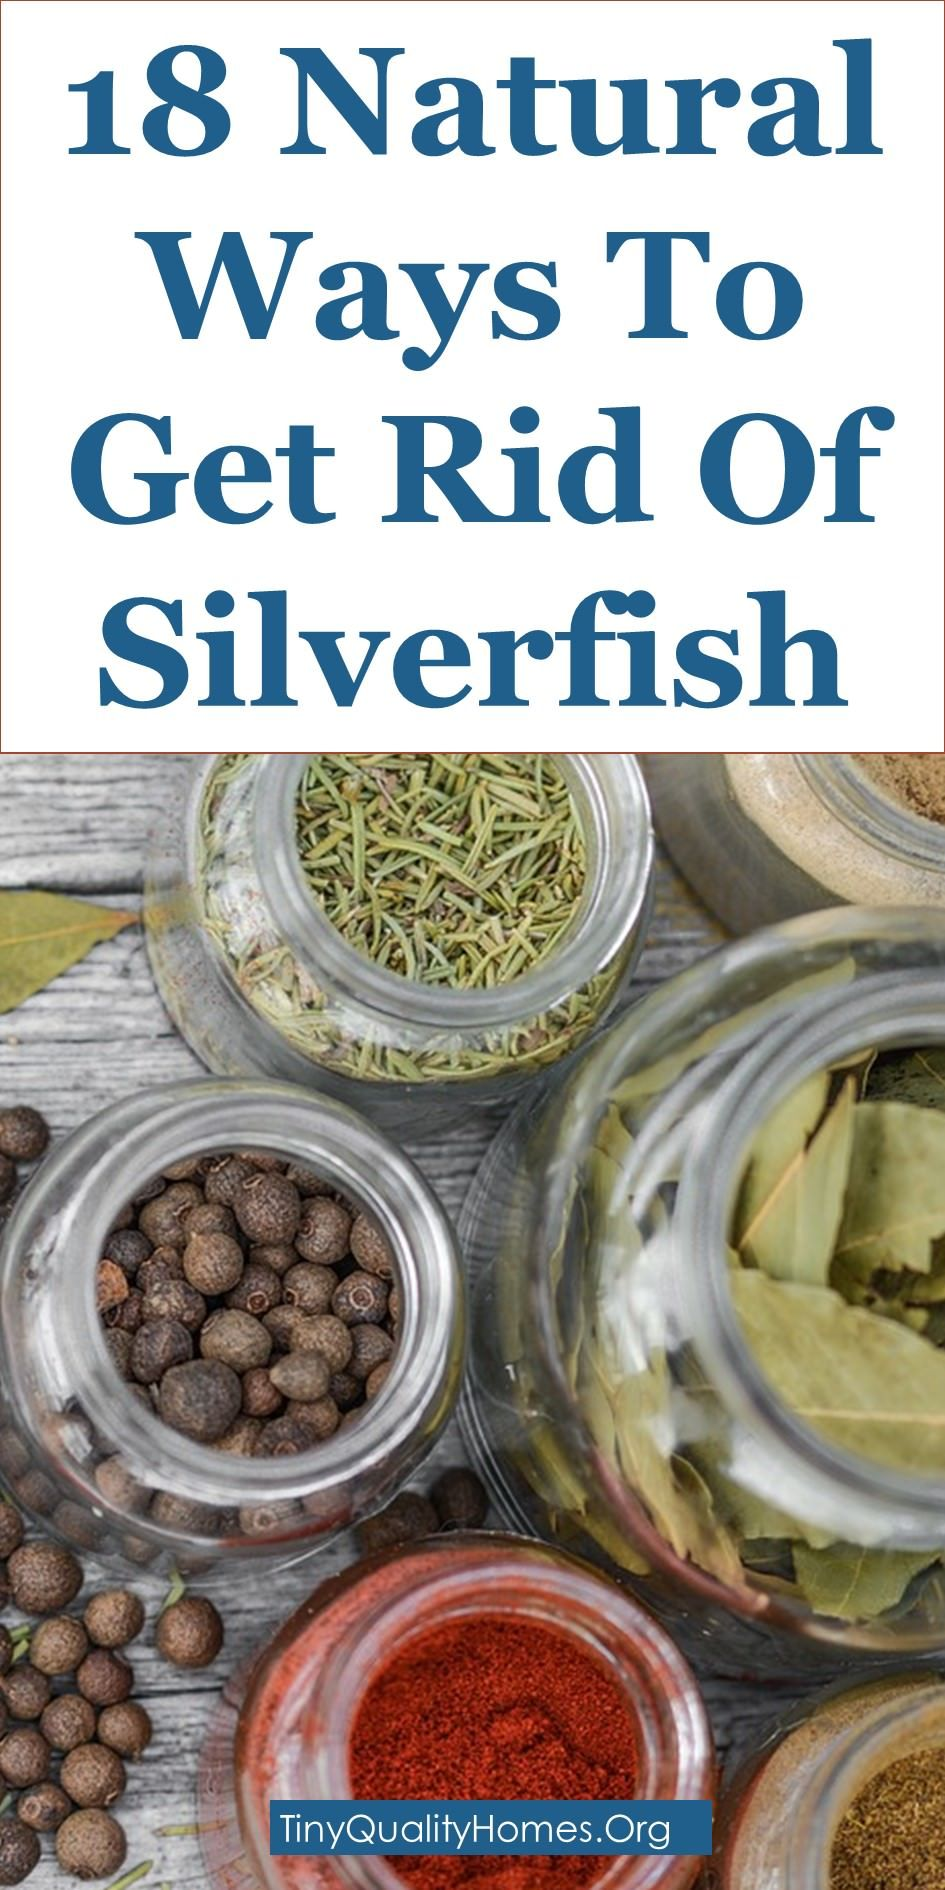 18 Natural Ways To Get Rid Of Silverfish Silverfish